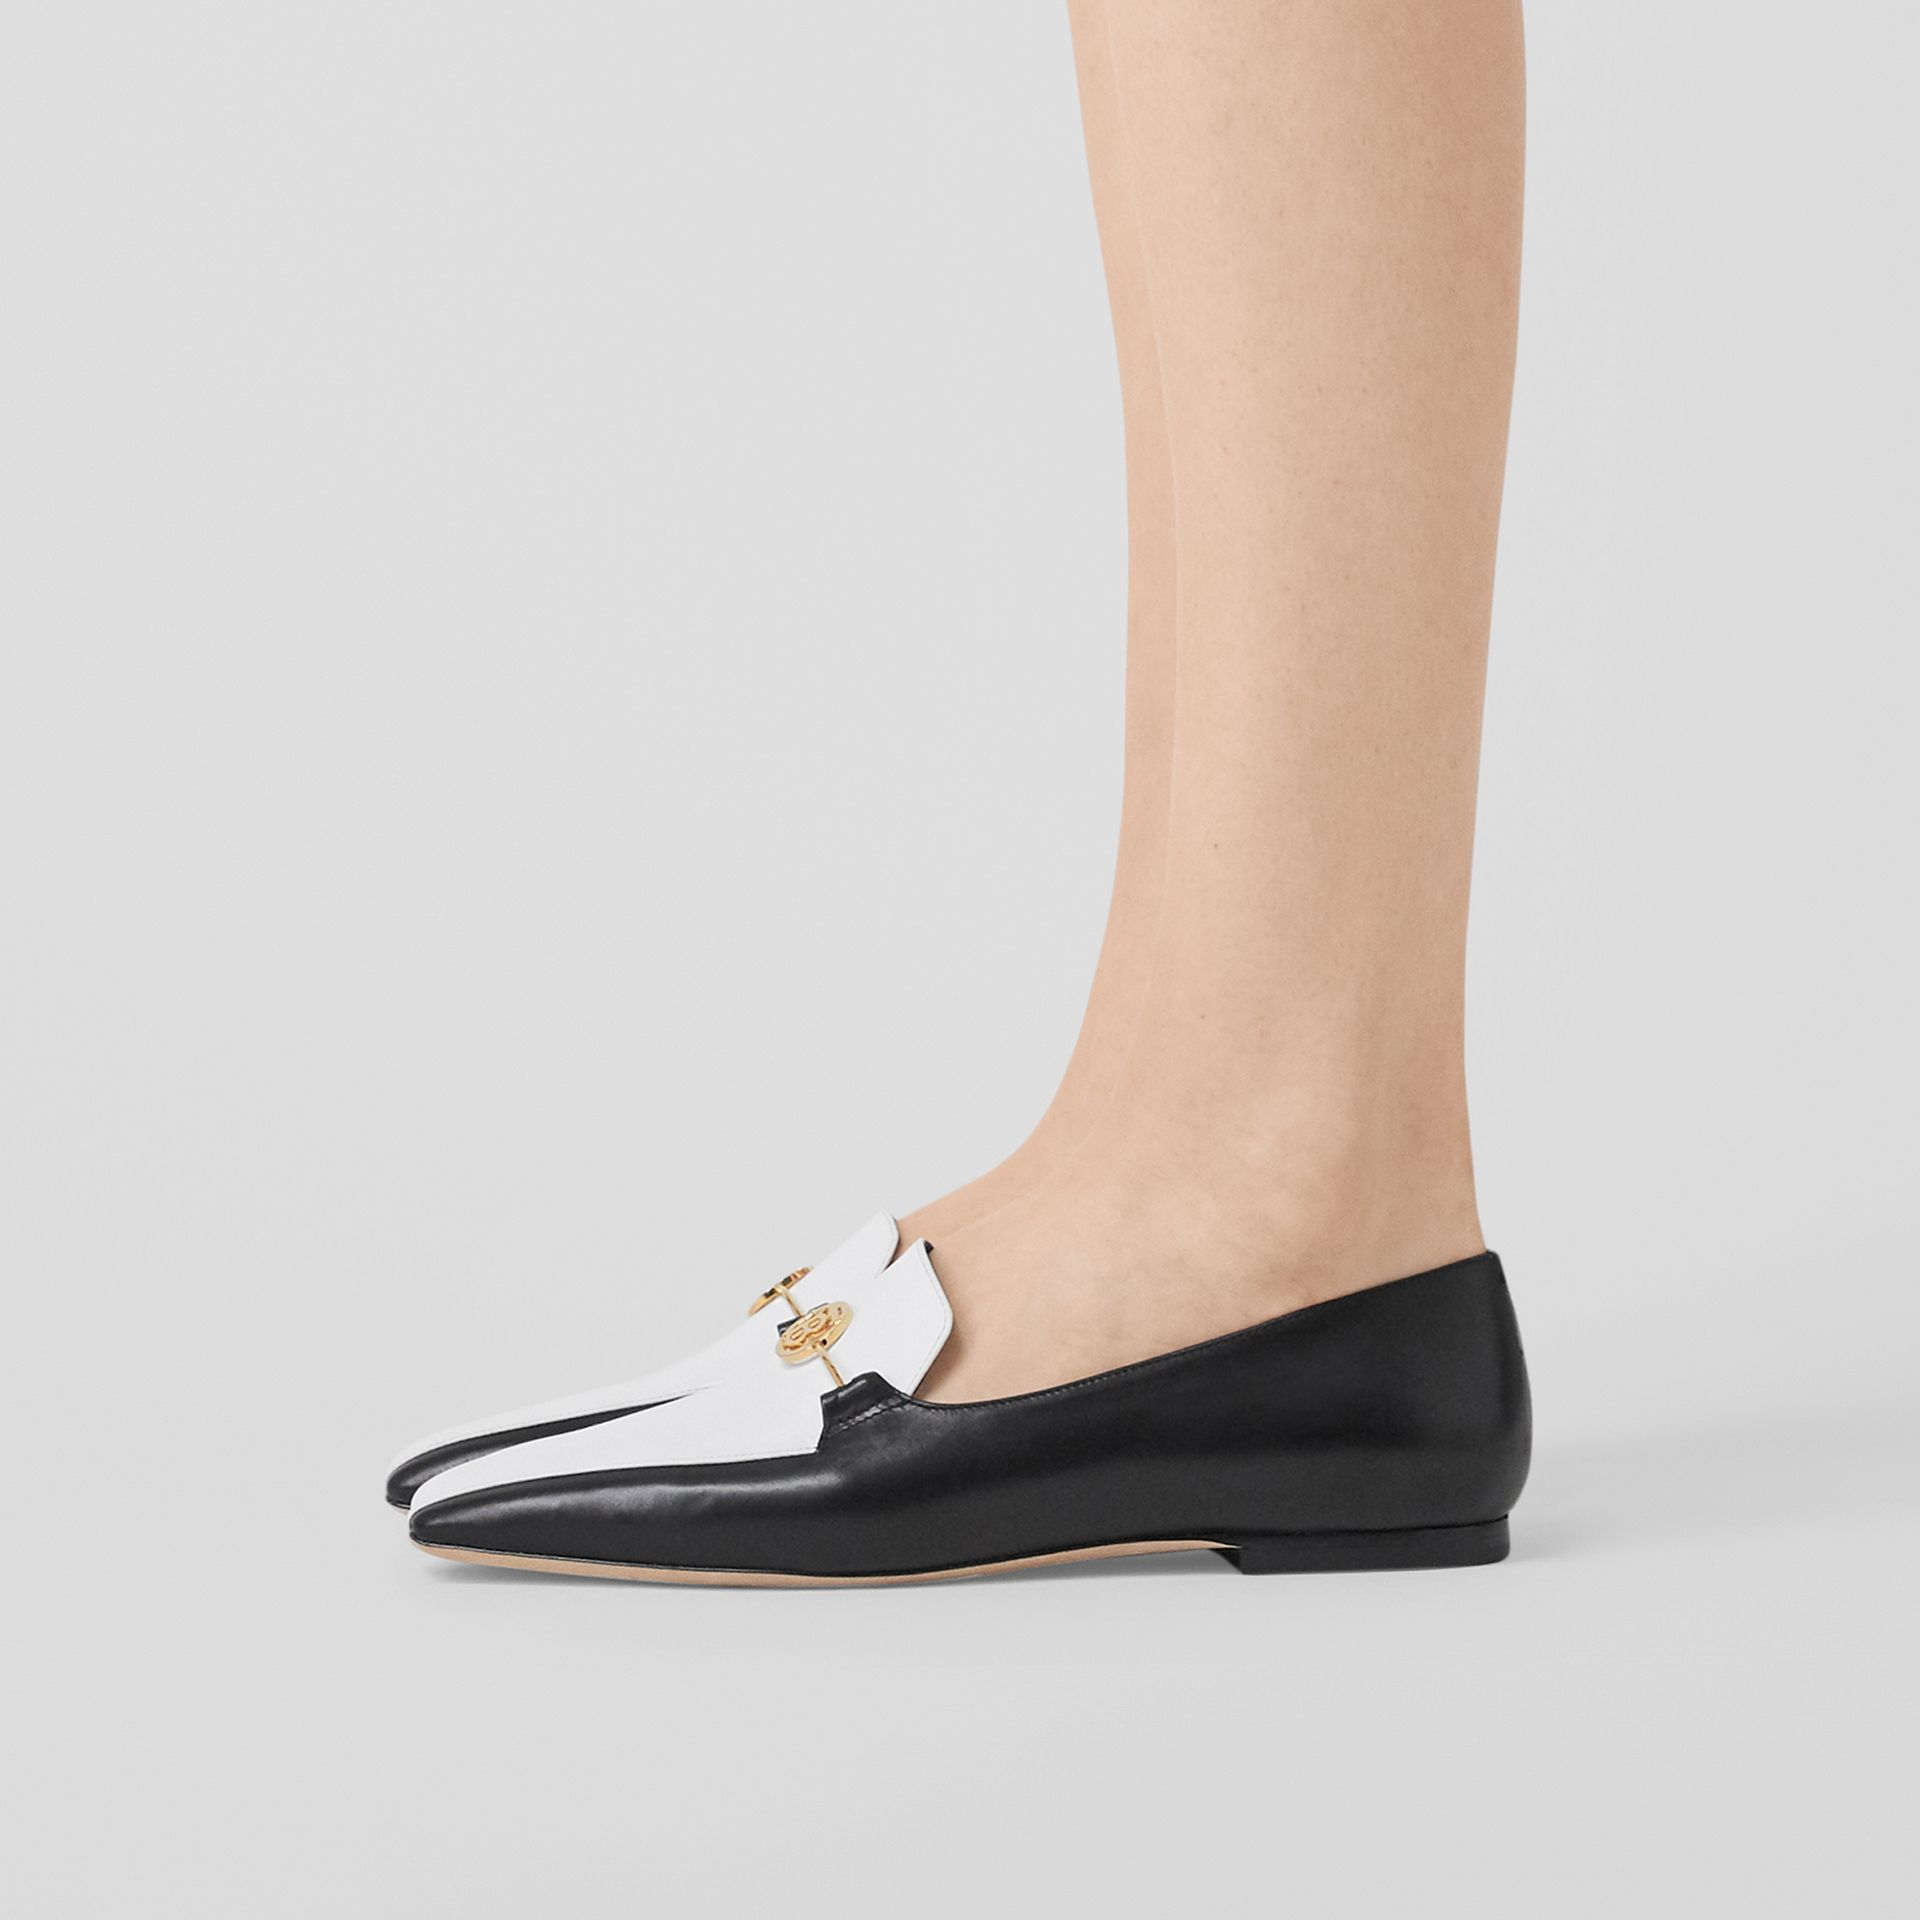 Monogram Motif Two-tone Leather Loafers in Black/white - Women | Burberry Canada - gallery image 2